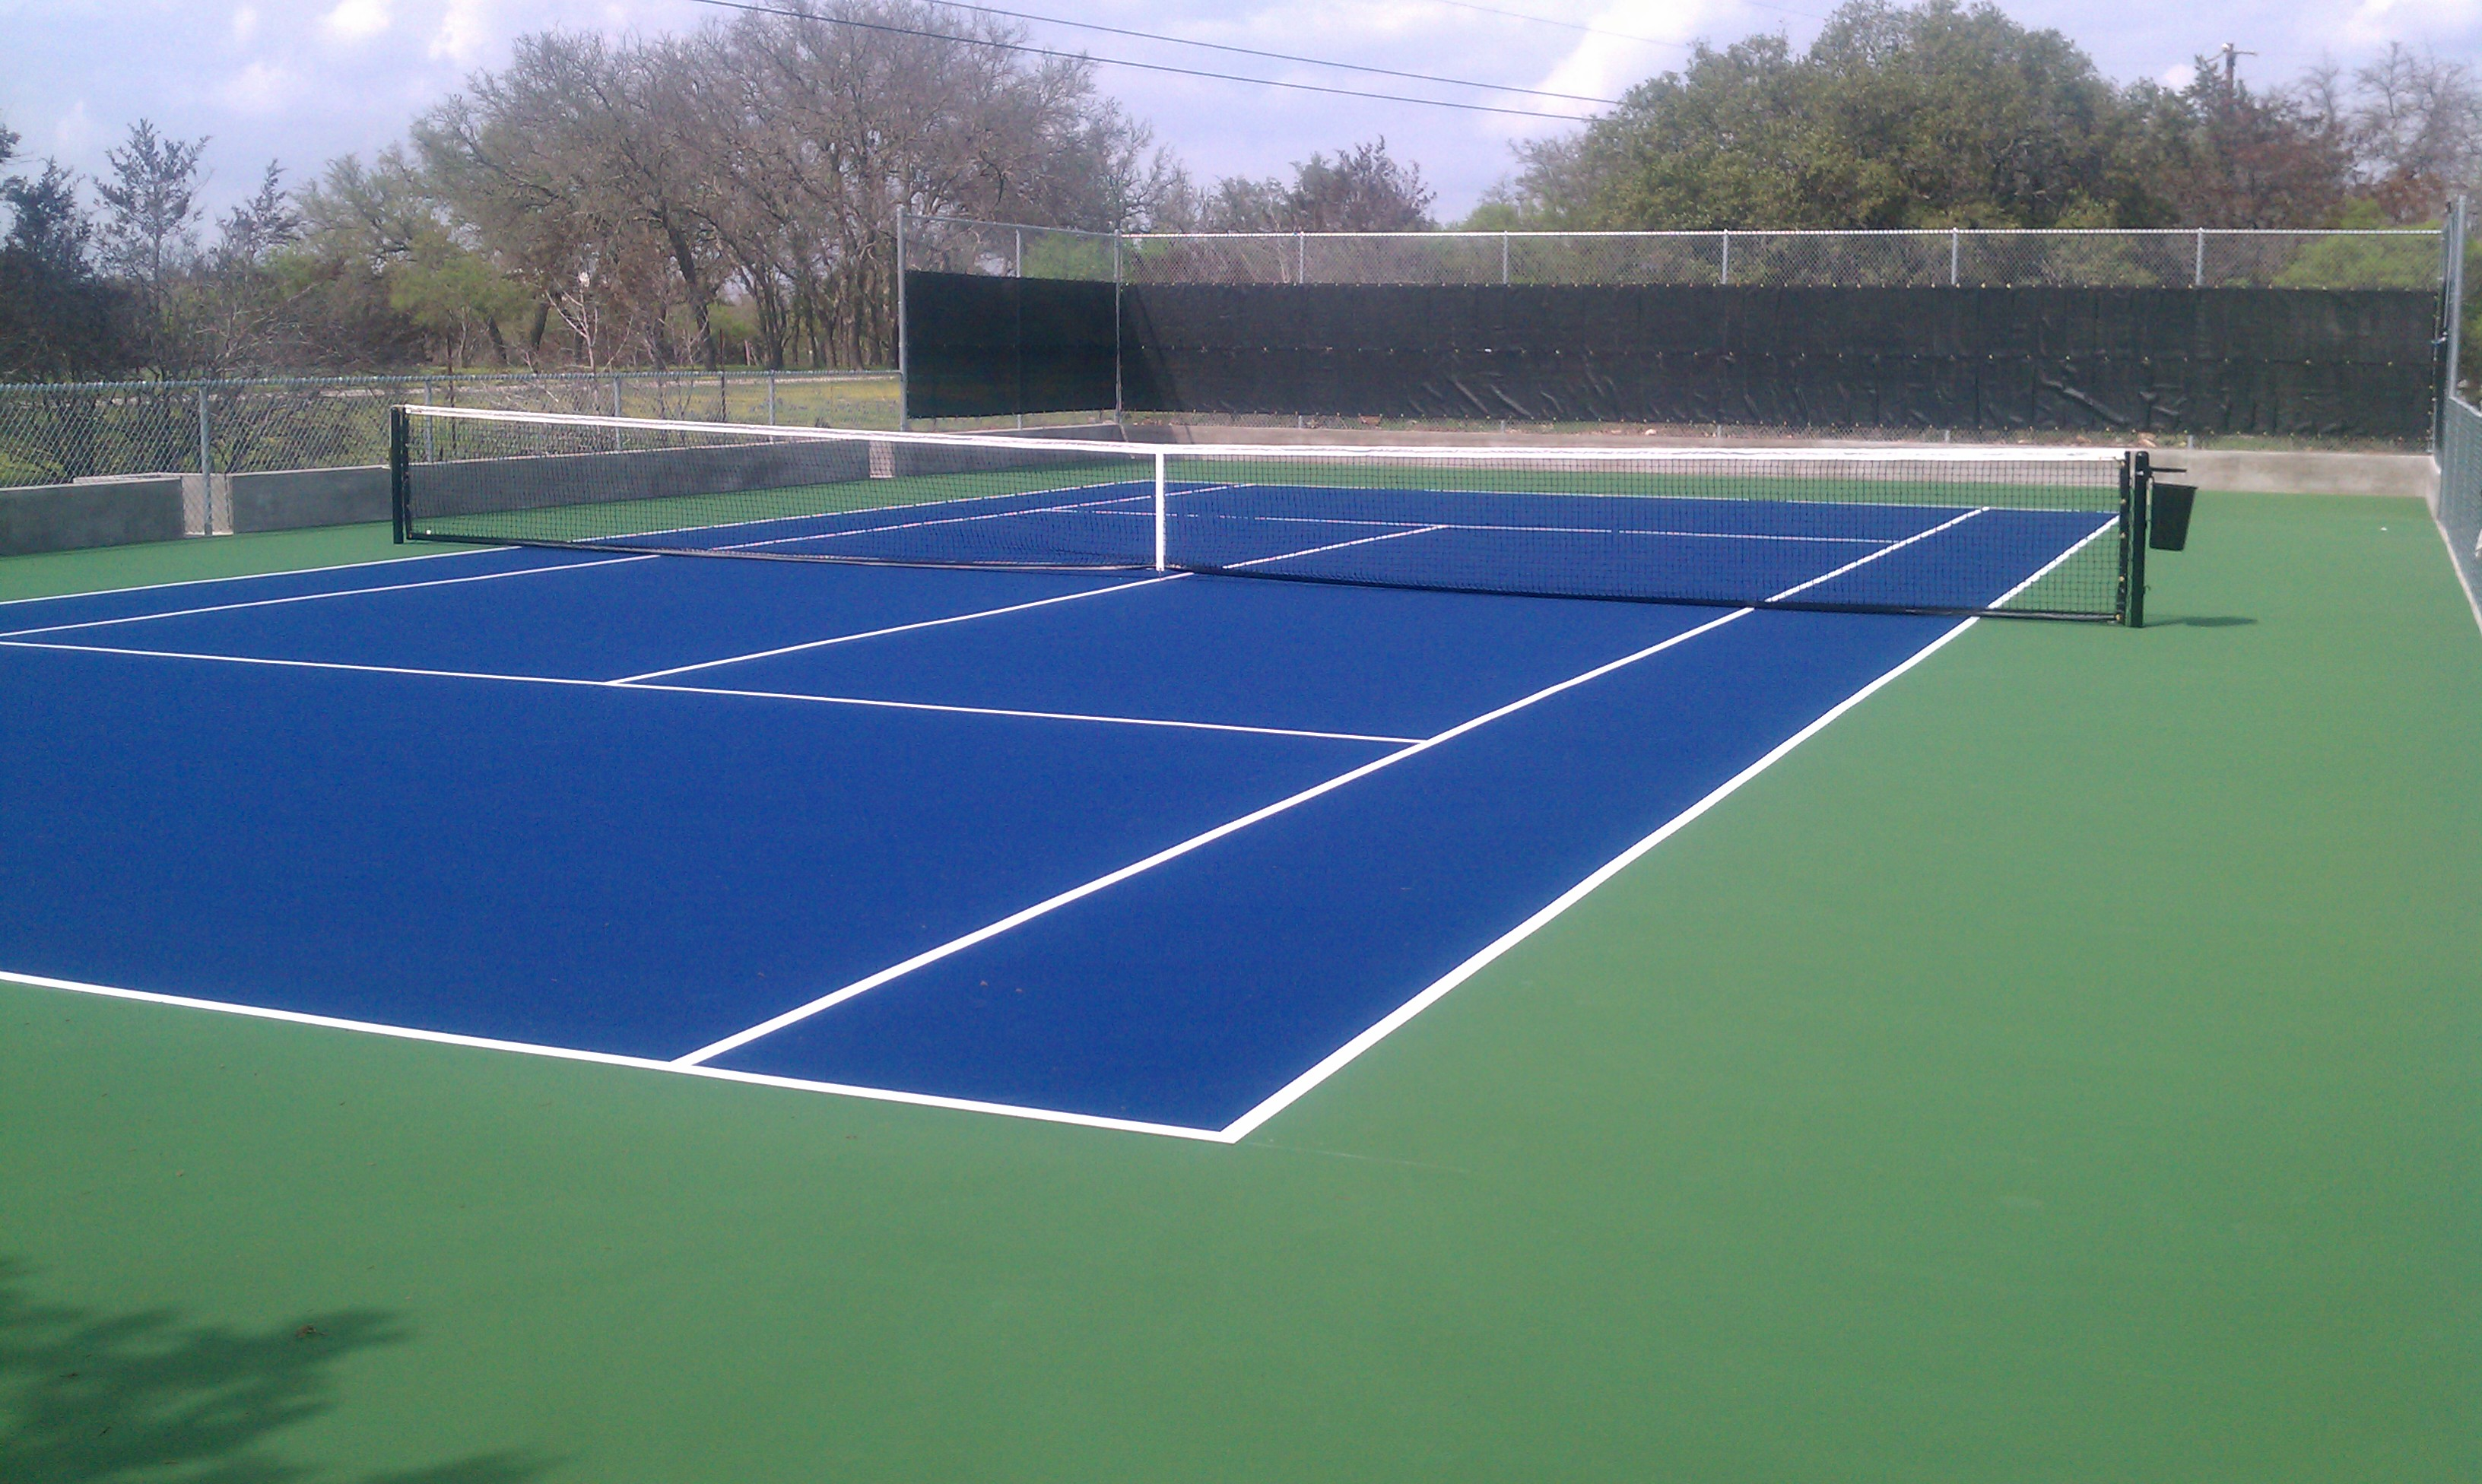 Home - Dobbs Tennis Courts, Inc.